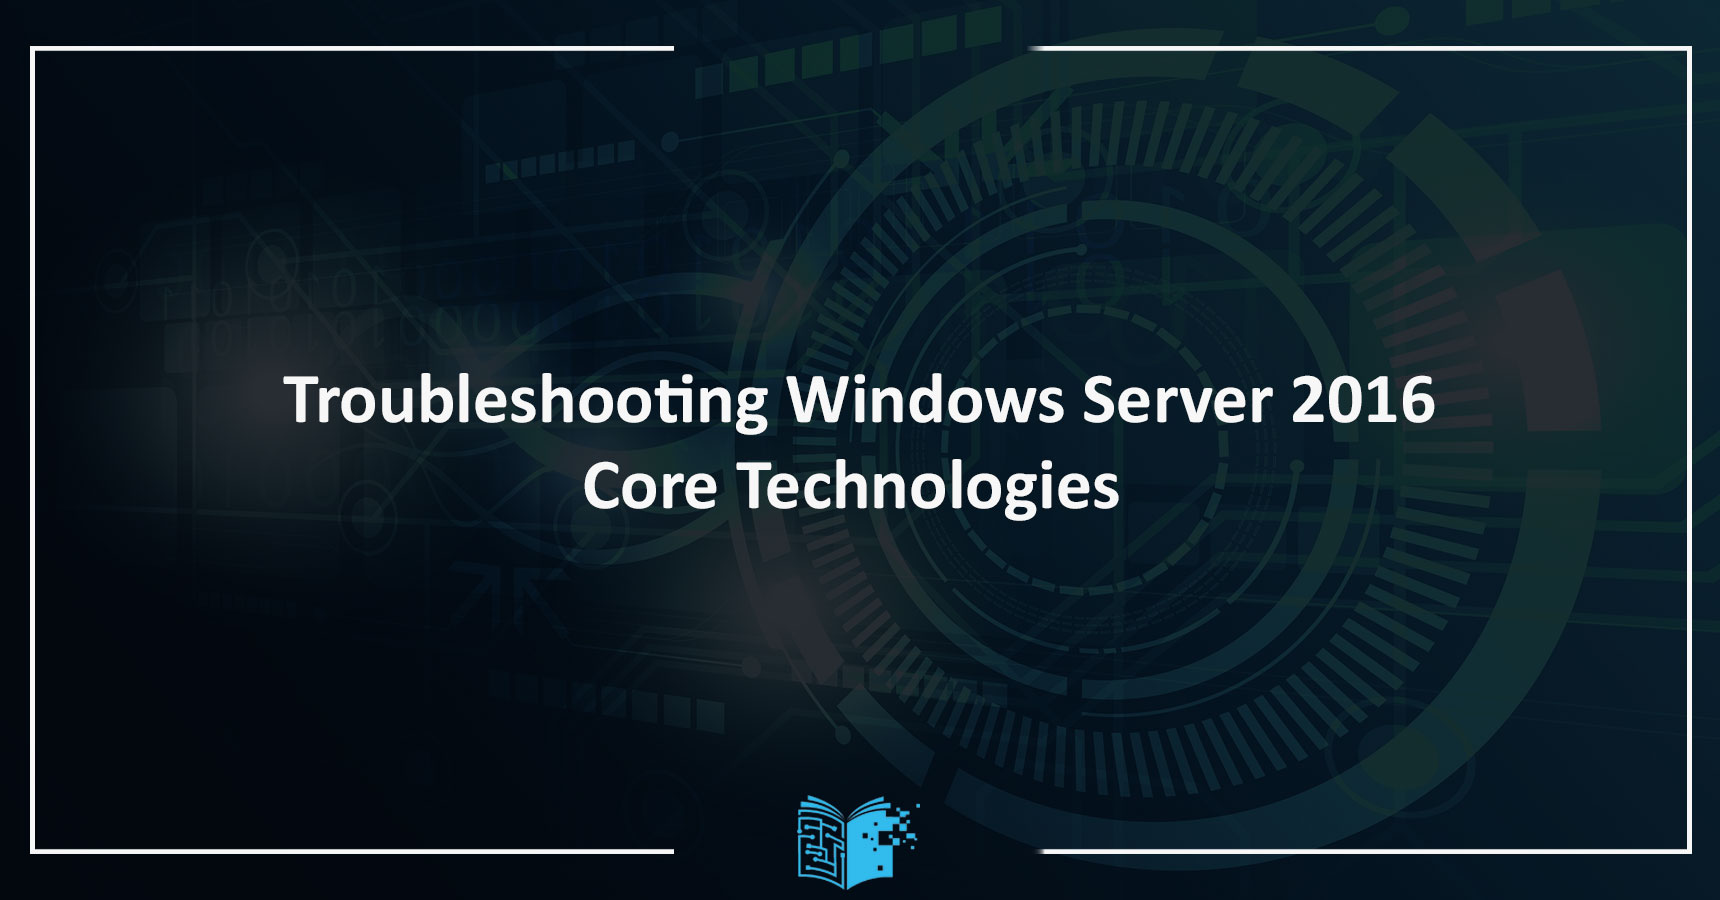 Troubleshooting Windows Server 2016 Core Technologies